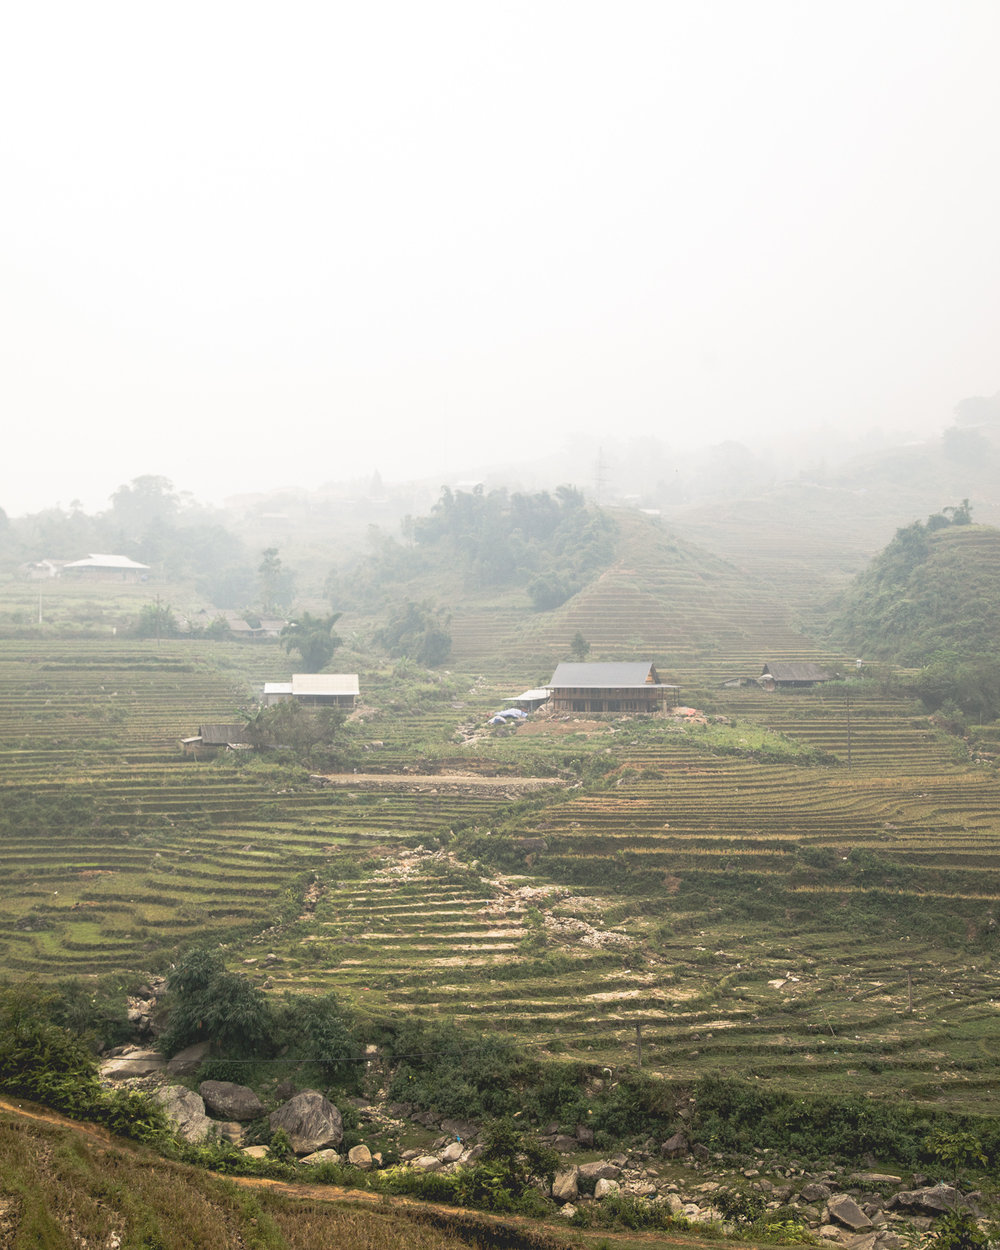 The village of Ta Van, away from the busy roads